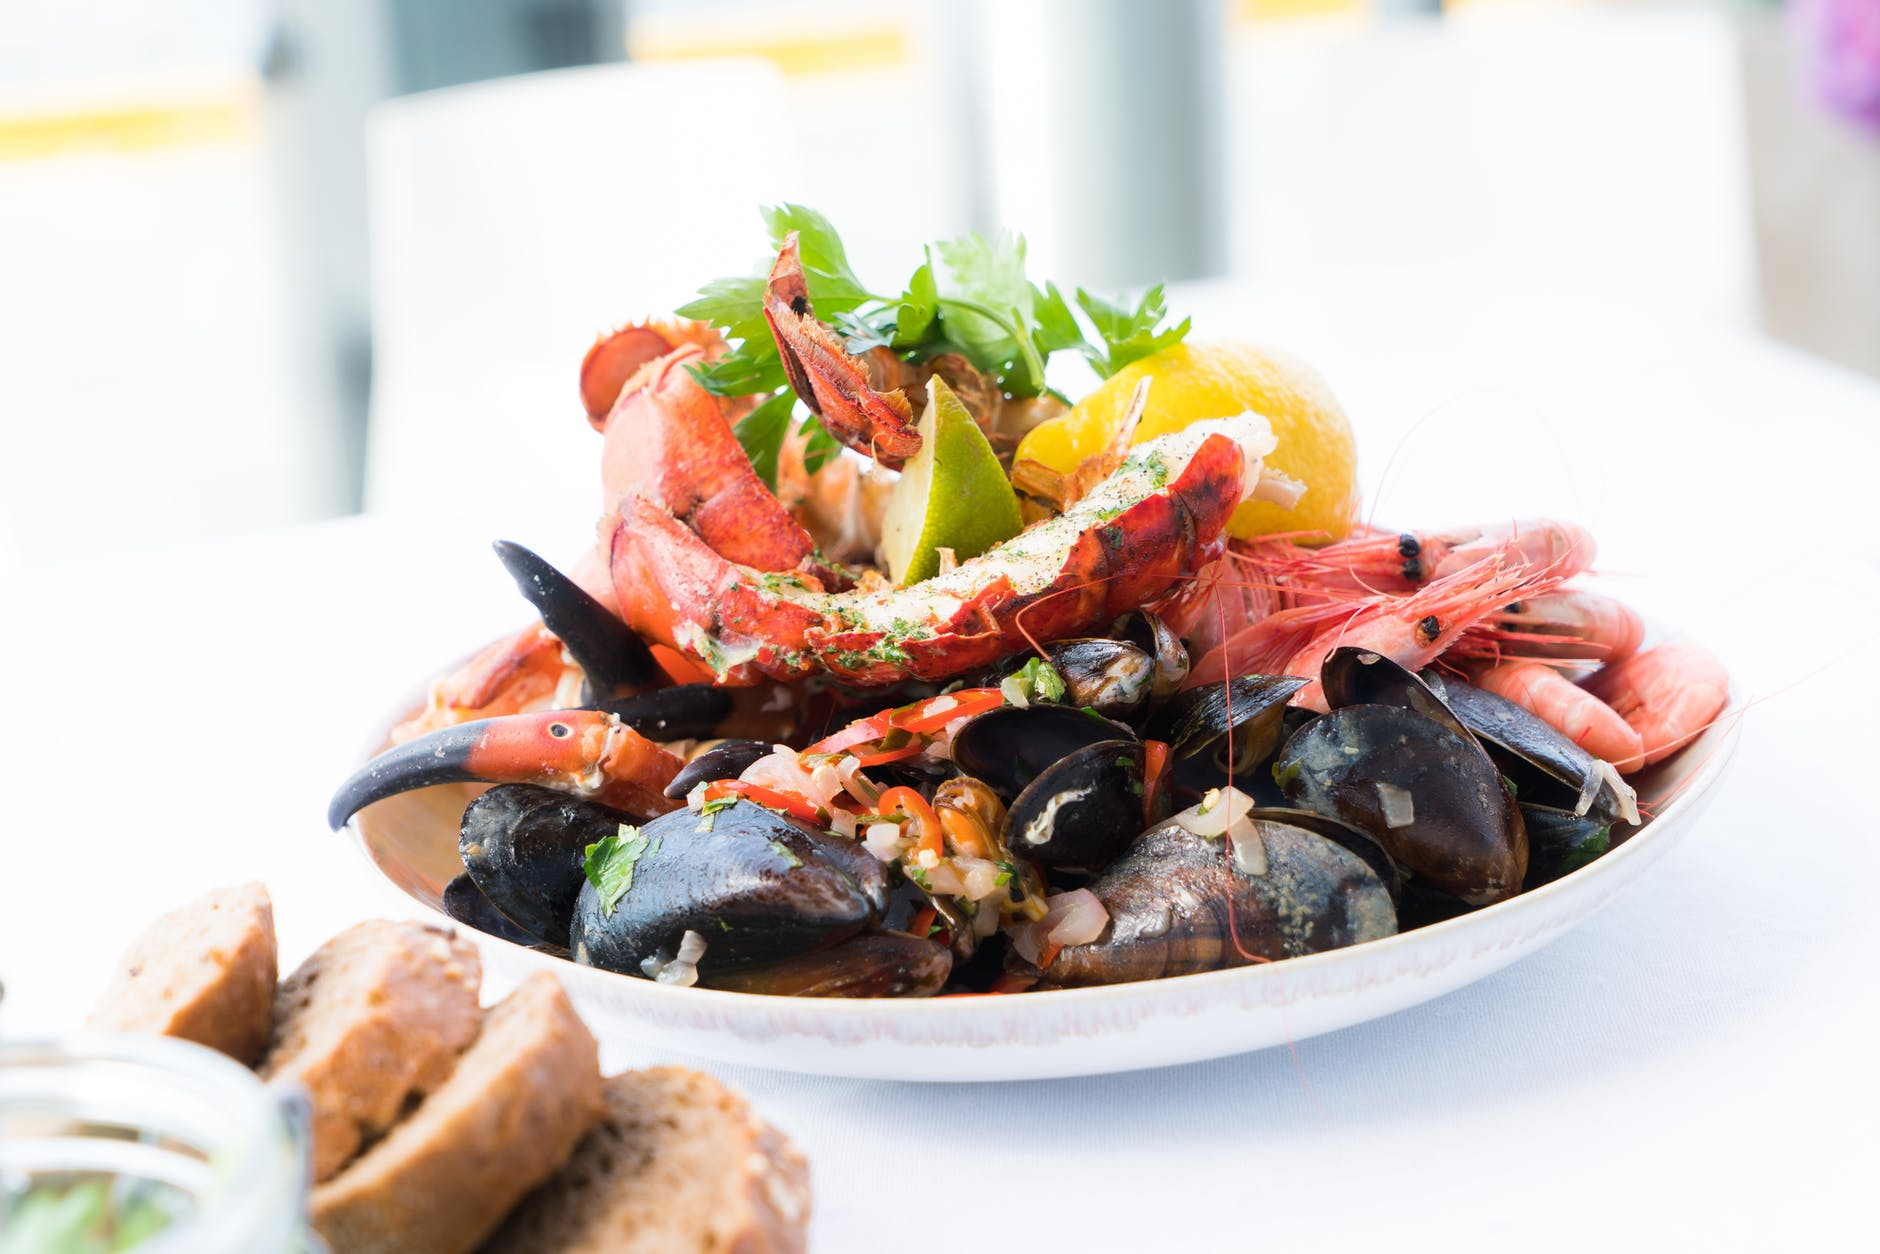 Types of Shellfish - Health Benefits, Nutritional Value, and Risks